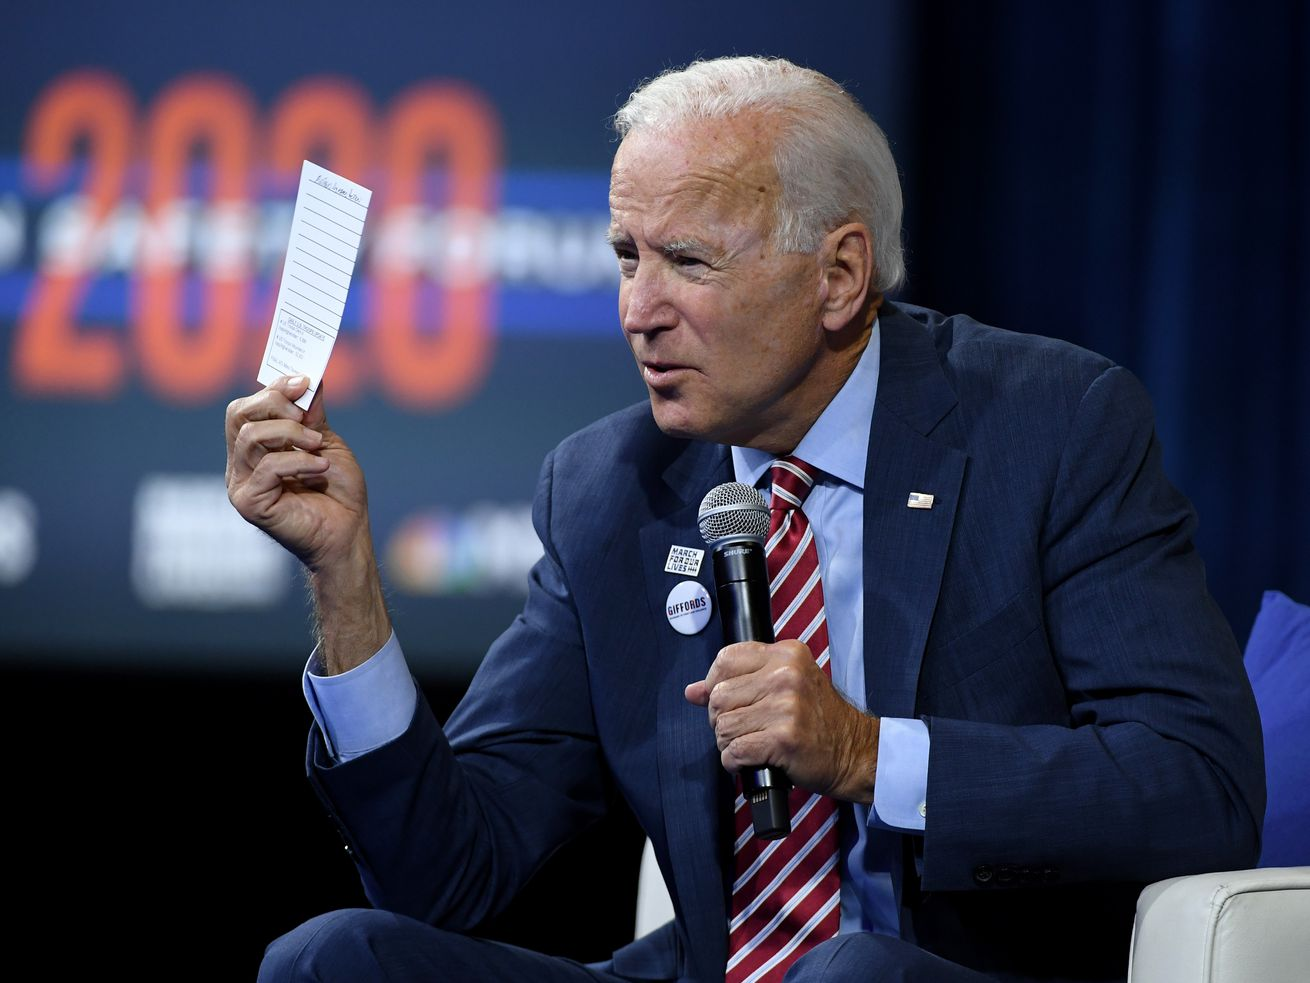 Former Vice President Joe Biden on stage at an event in Las Vegas sitting down.